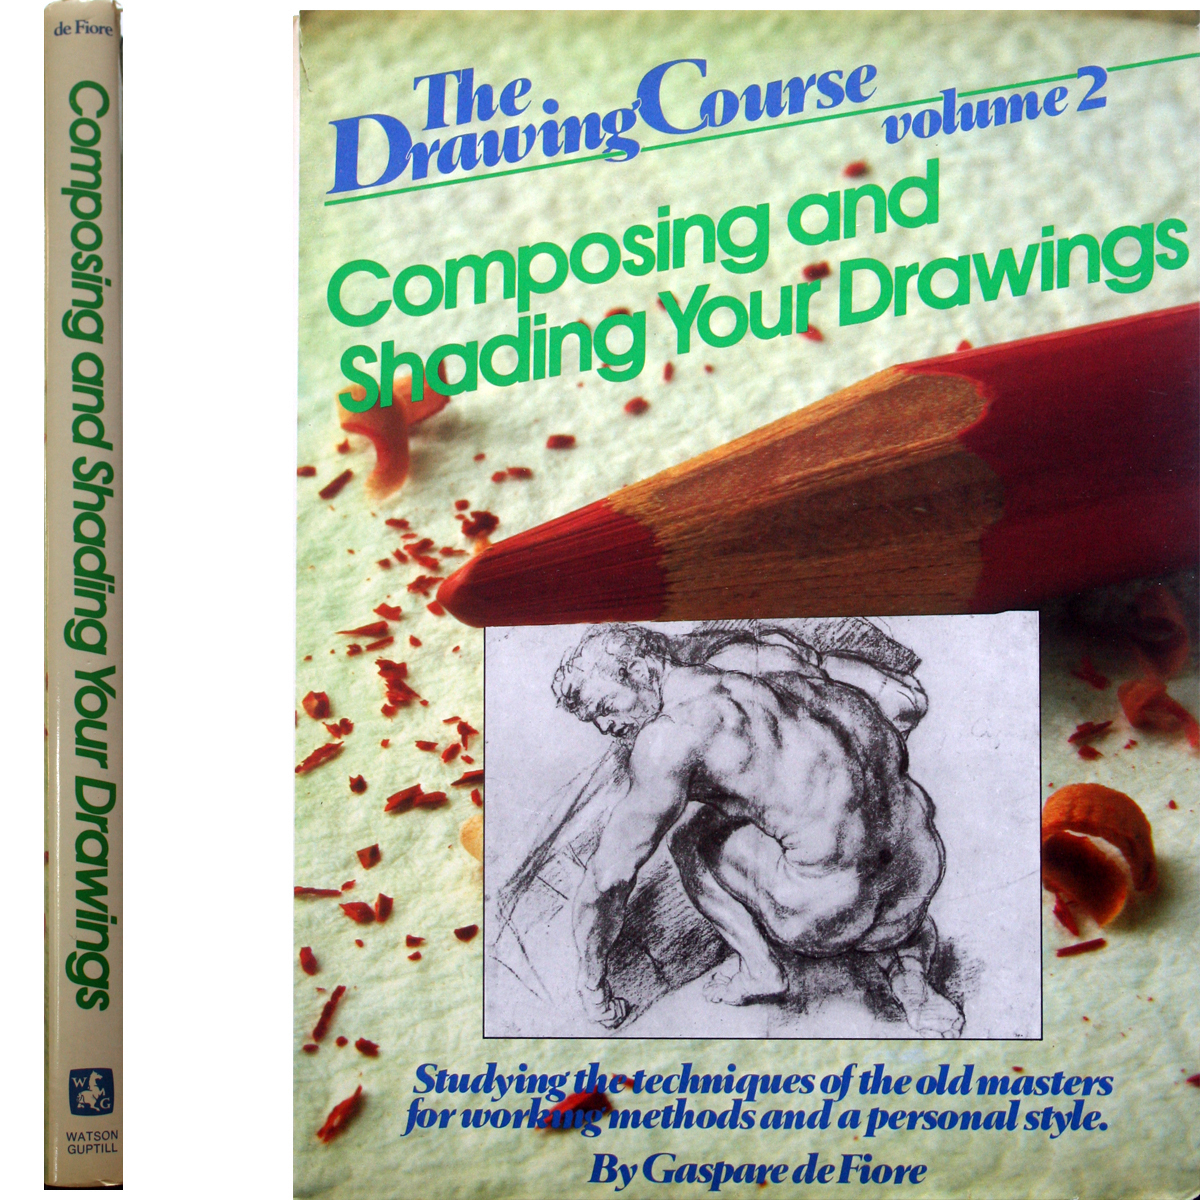 Primary image for Composing & Shading Your Drawings - Gaspare de Fiore OOP!